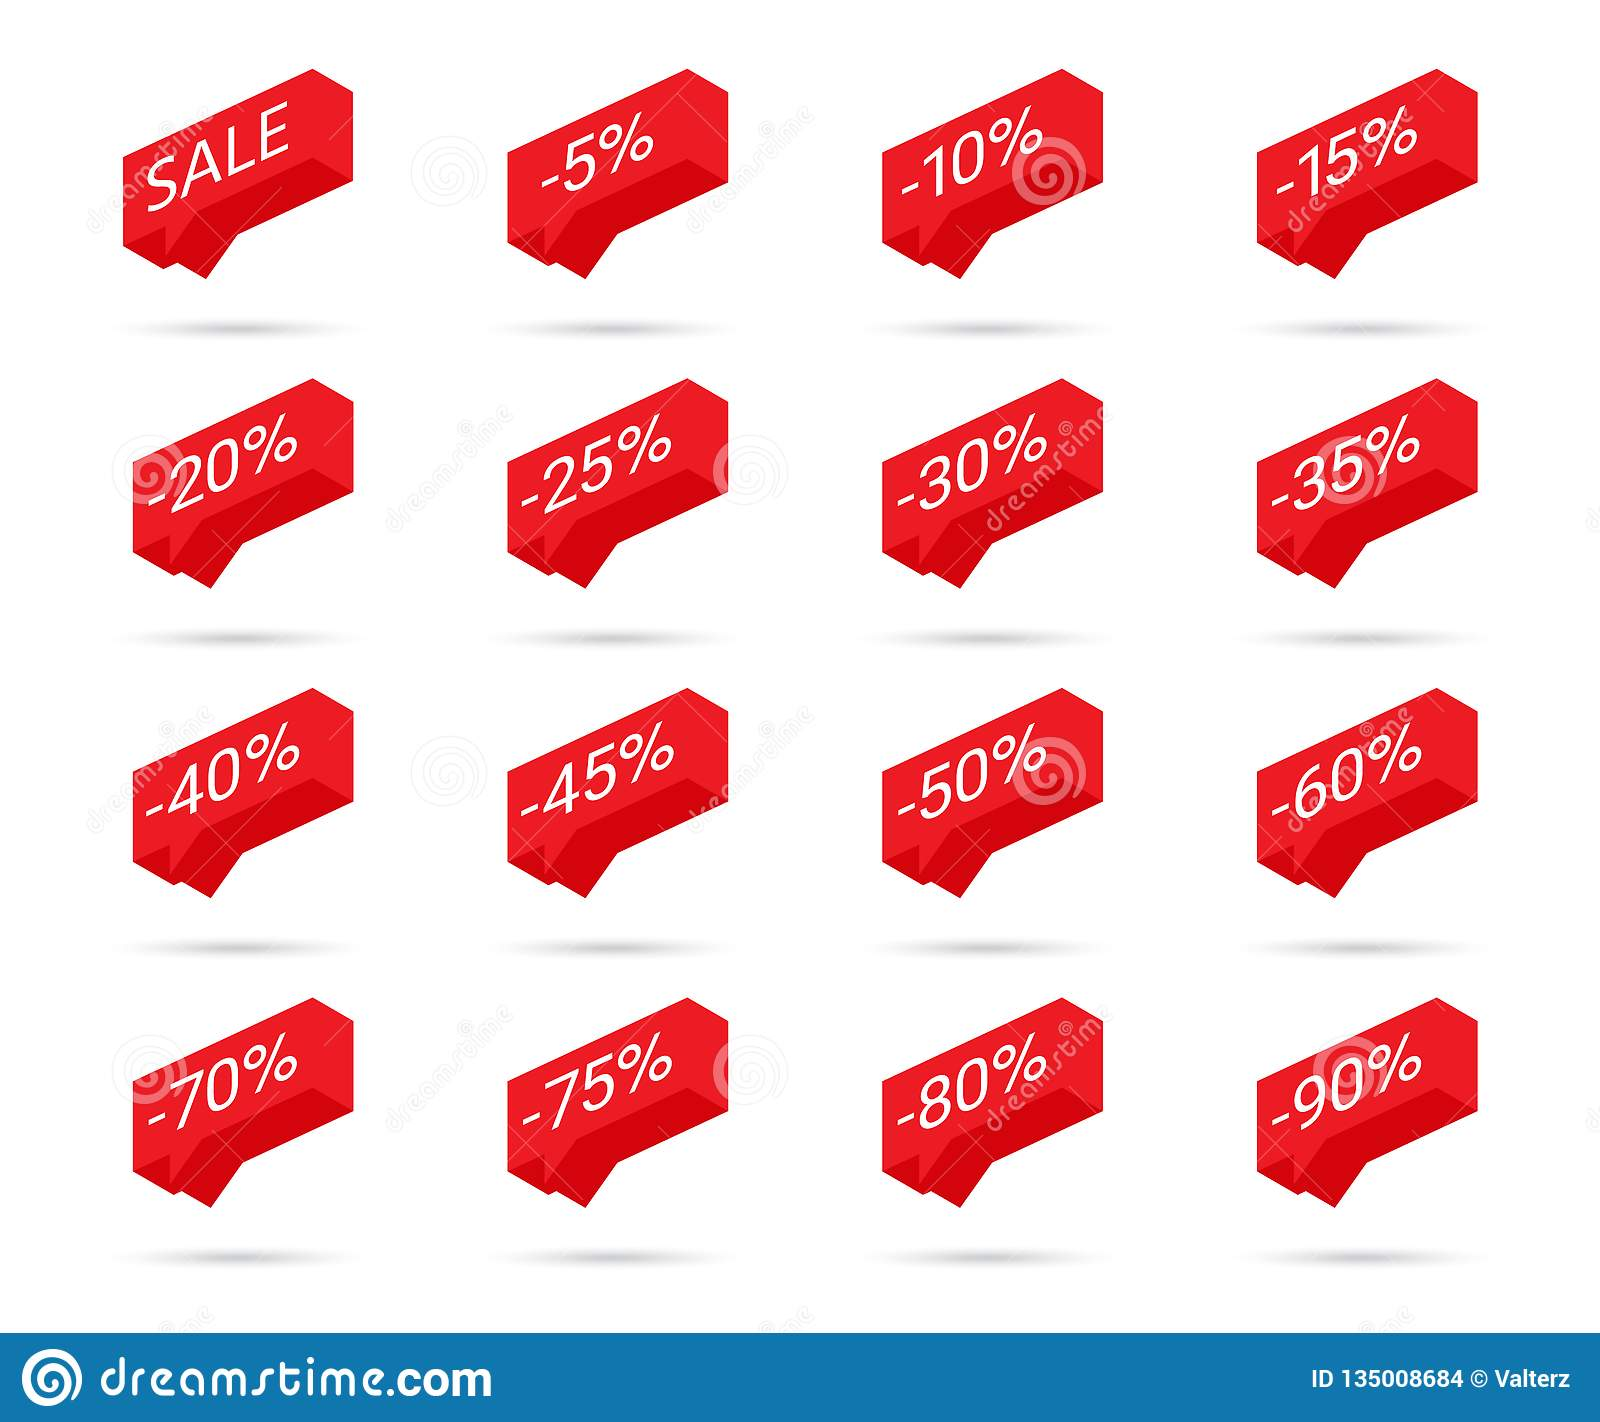 Percent Discount Icons  Sale Discount Icons  Discount Tag